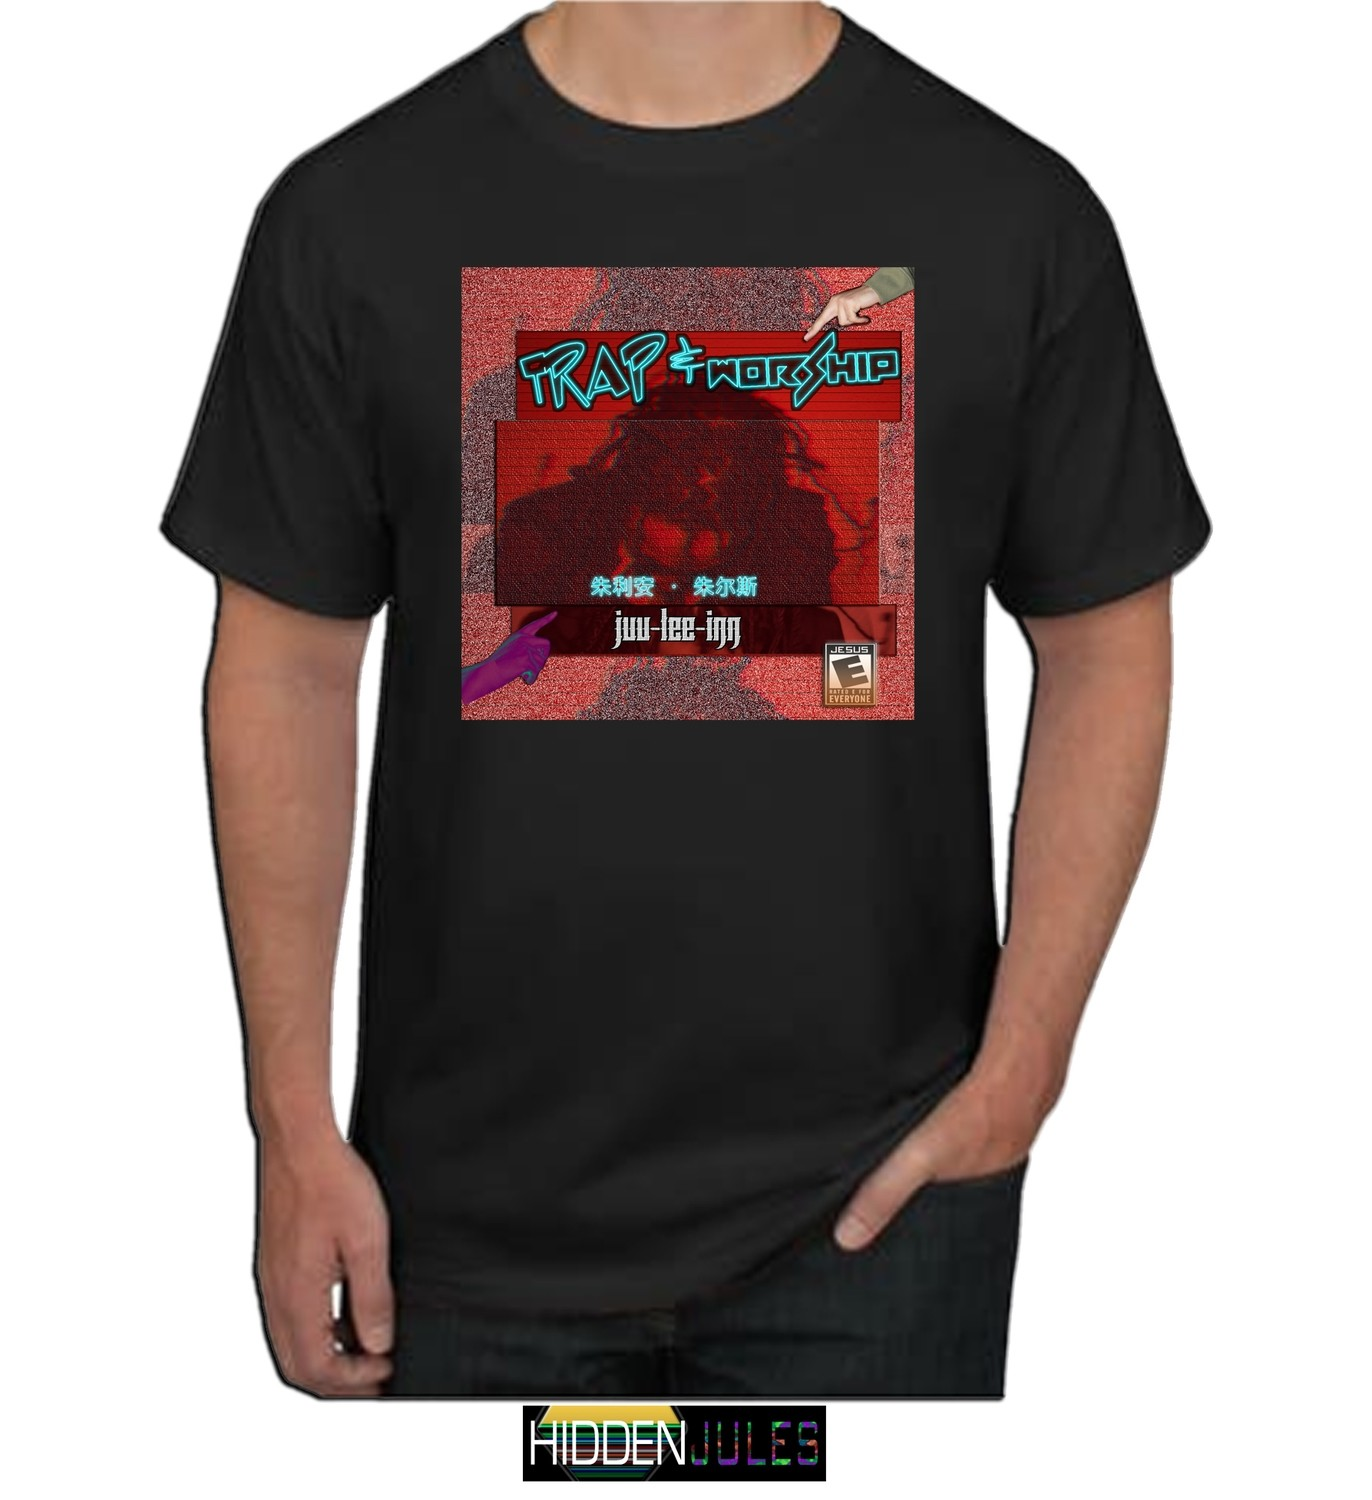 SHIRT: Trap & Worship Cover (Limited Edition) (Premium Quality)